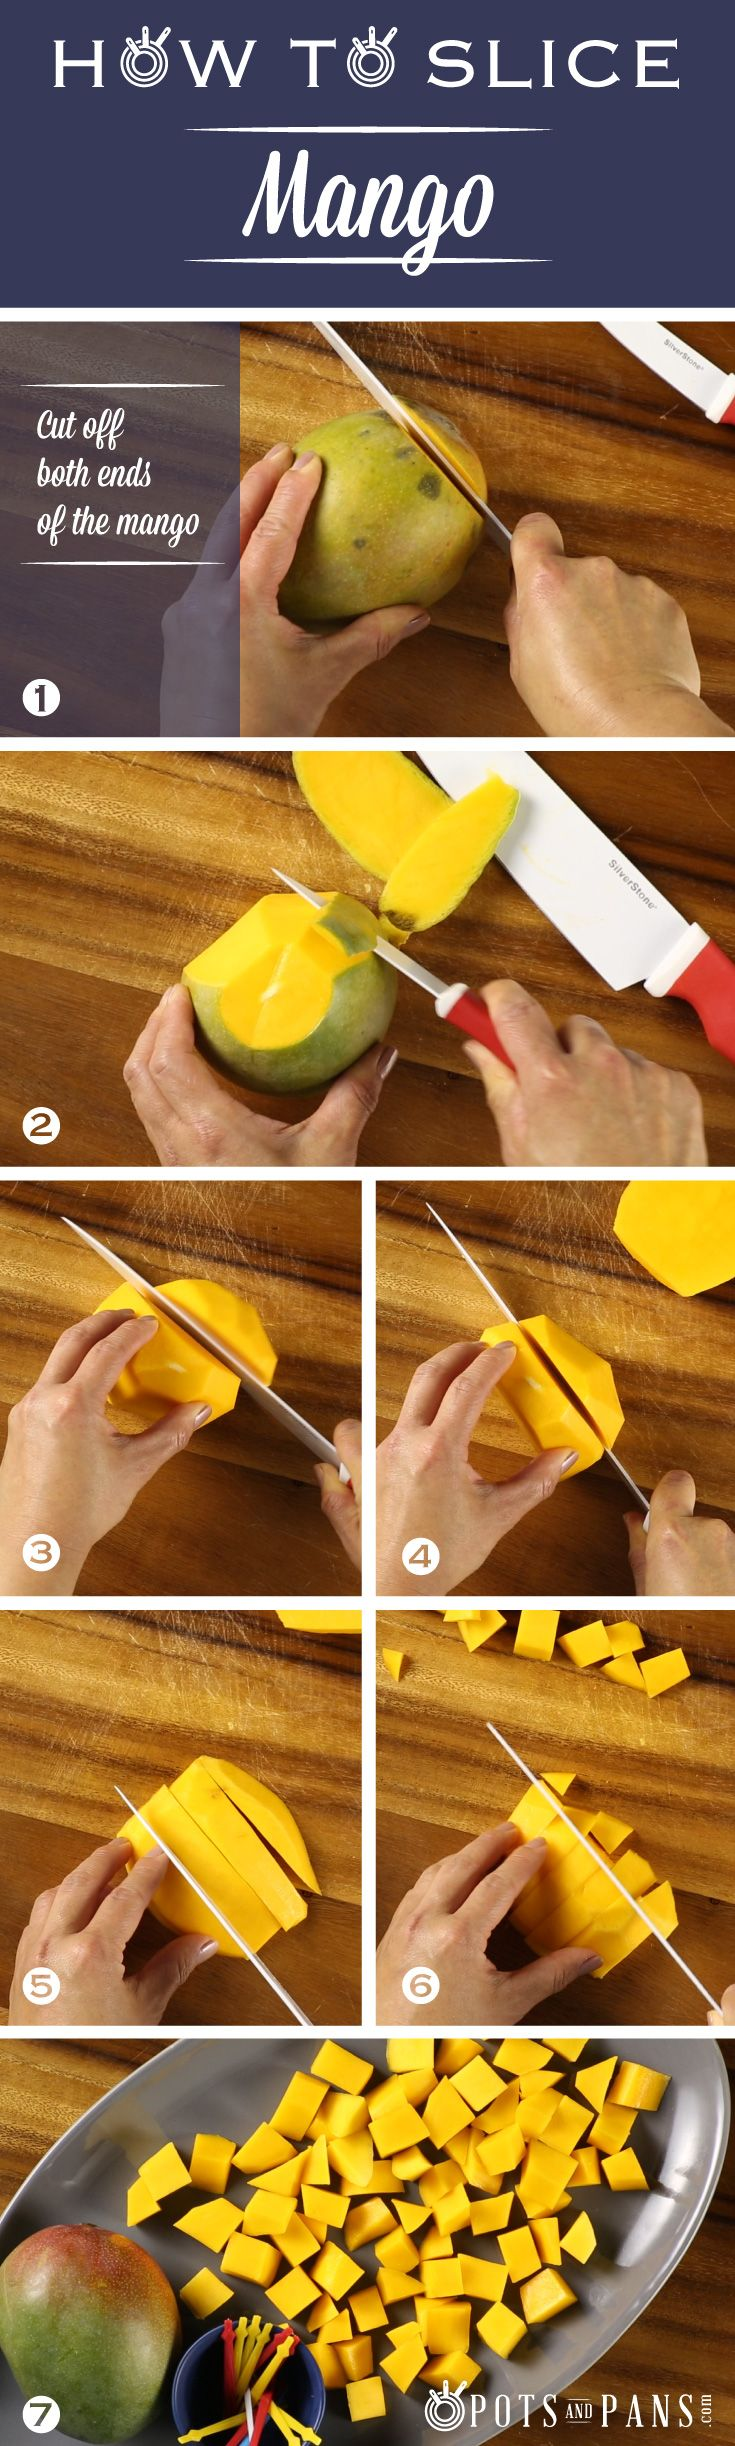 Let's face it, mango isn't the easiest fruit to handle. Click on the image to watch a quick tutorial to learn how to easily slice and dice the tropical fruit.